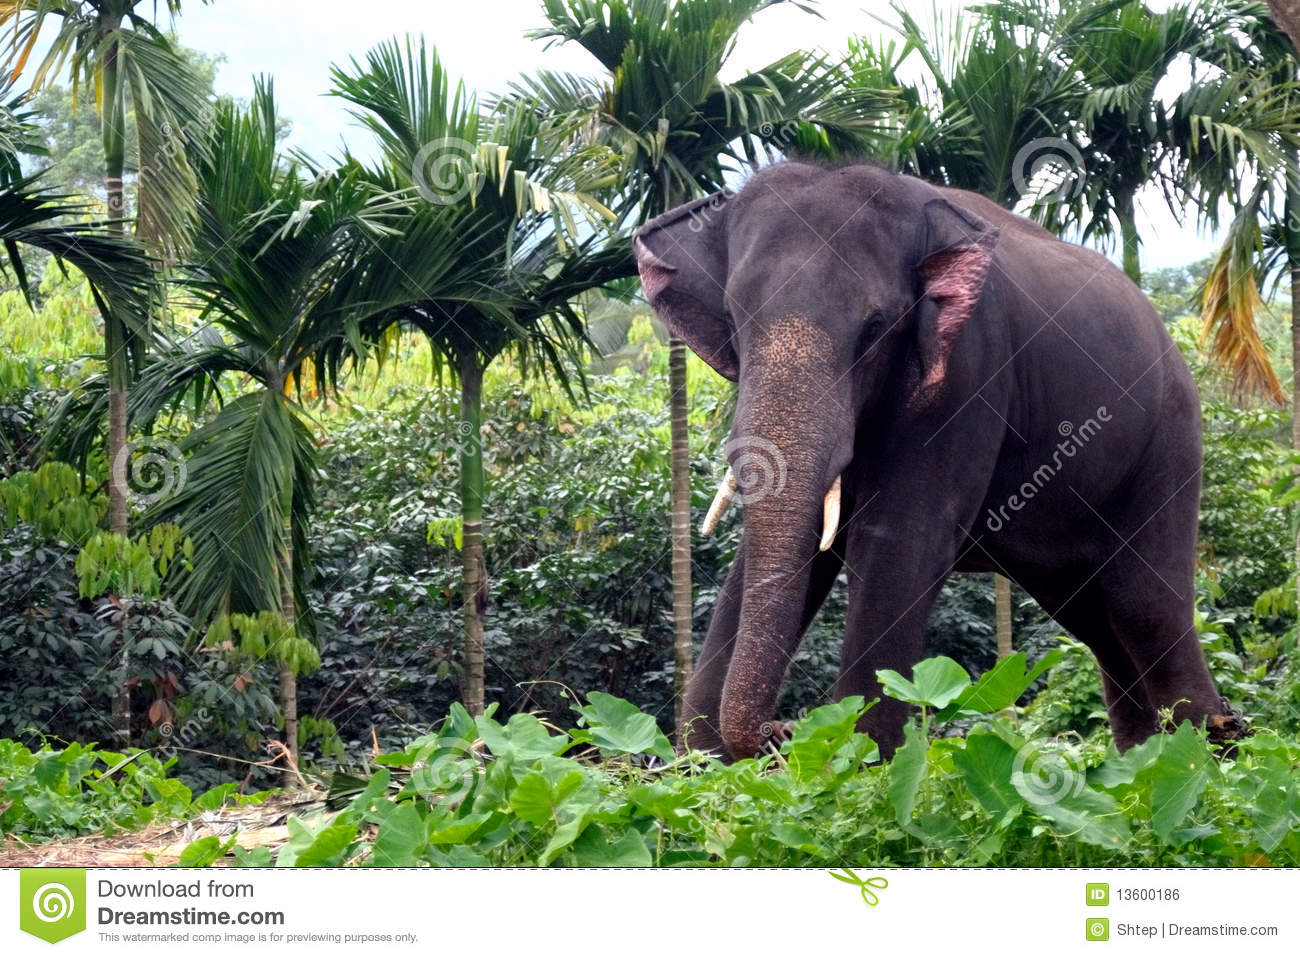 What an elephant&#39